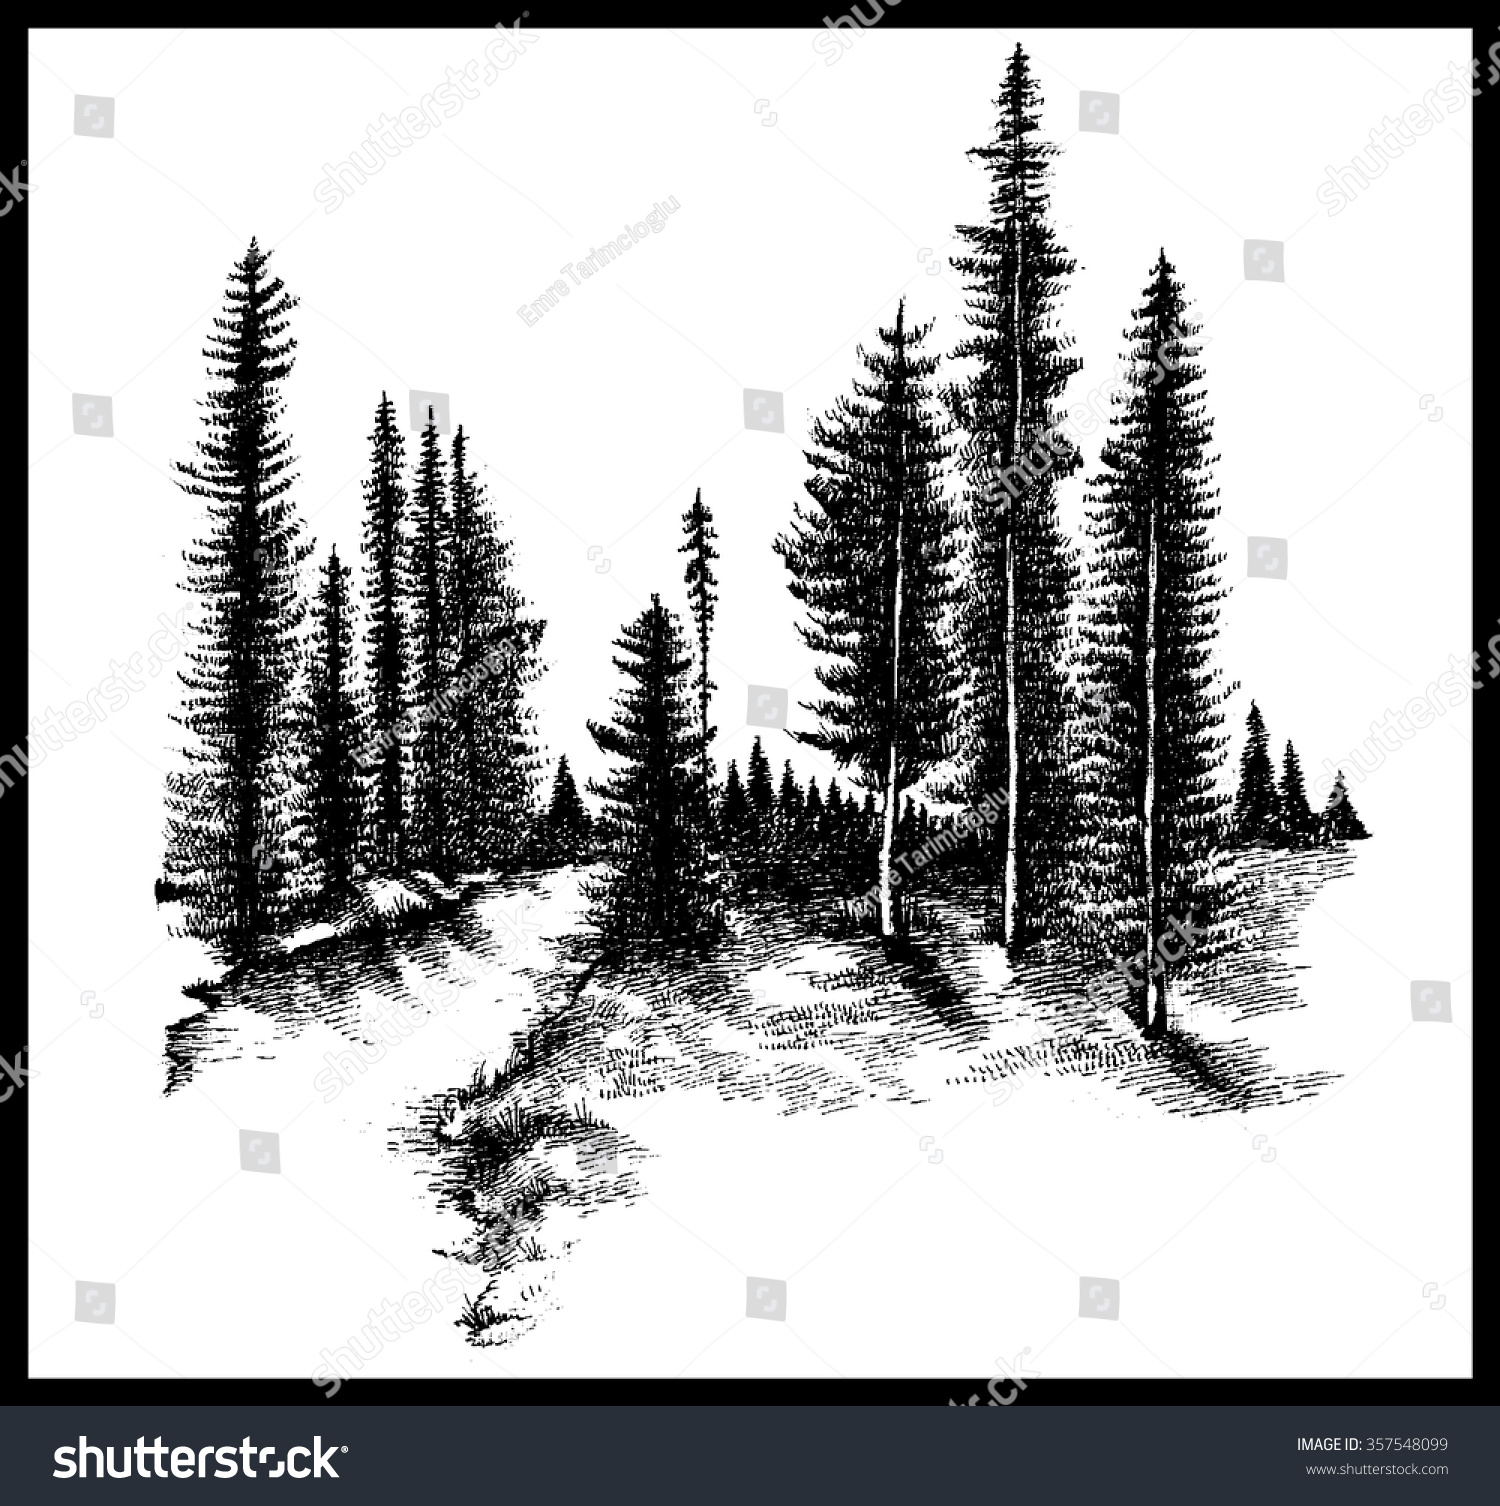 mountain forest pine trees river hand stock vector vector images of pine trees vector pine trees silhouettes free